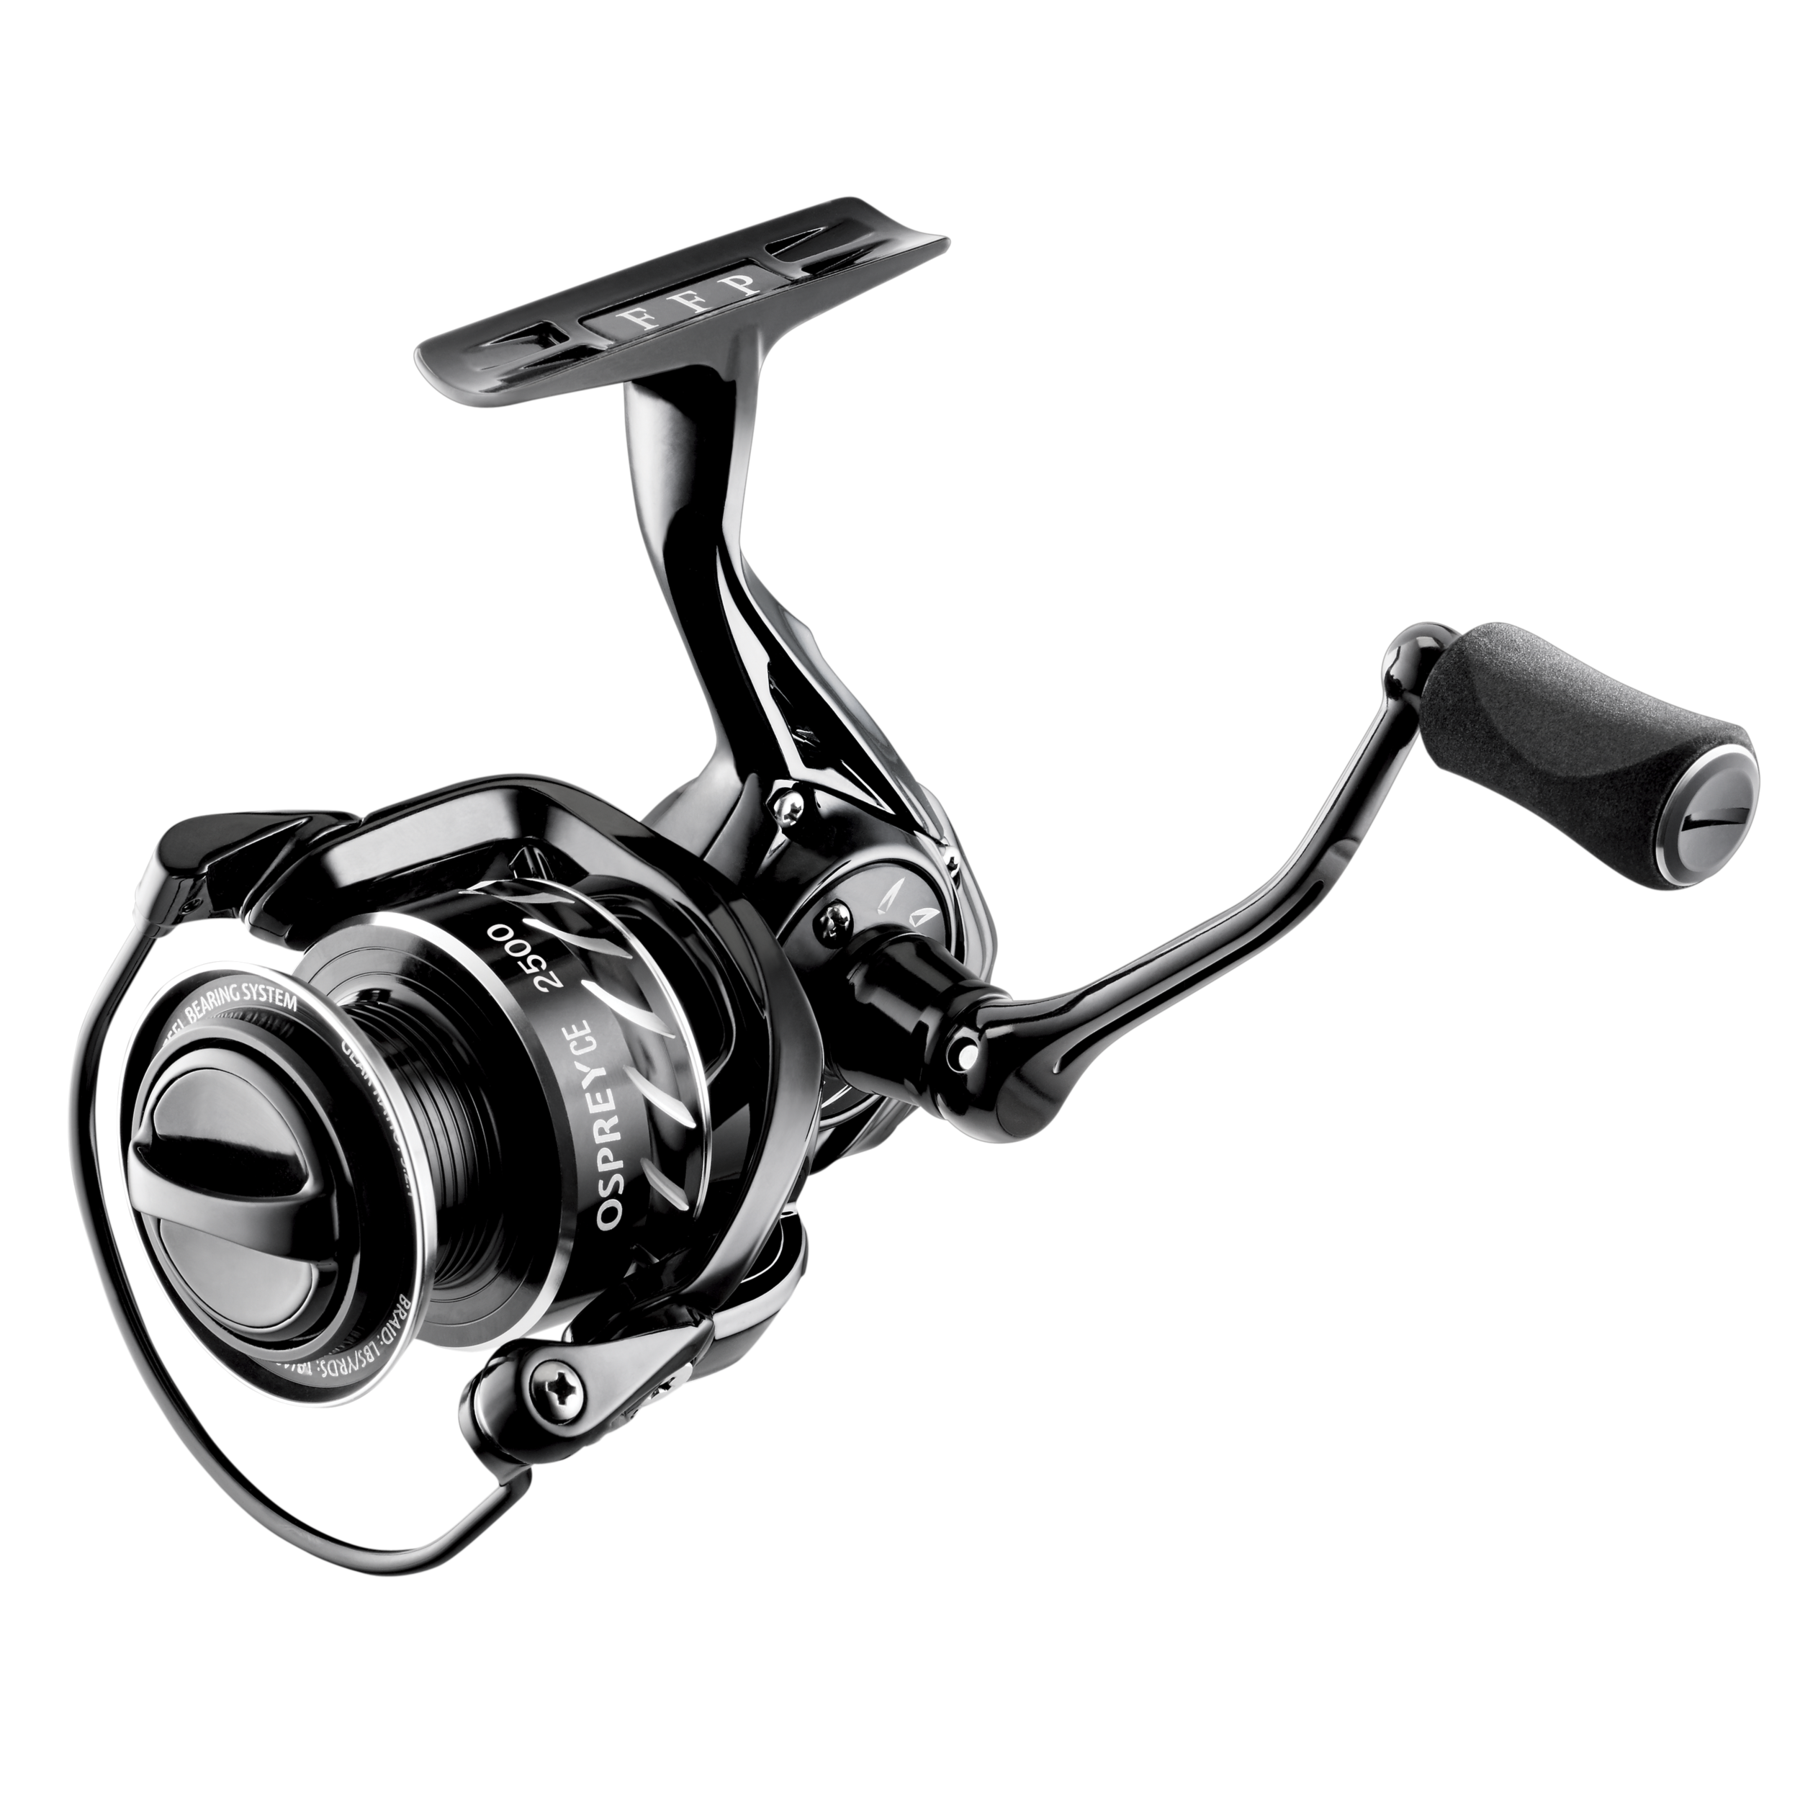 Florida Fishing Products Osprey CE 1000 Spinning Reel